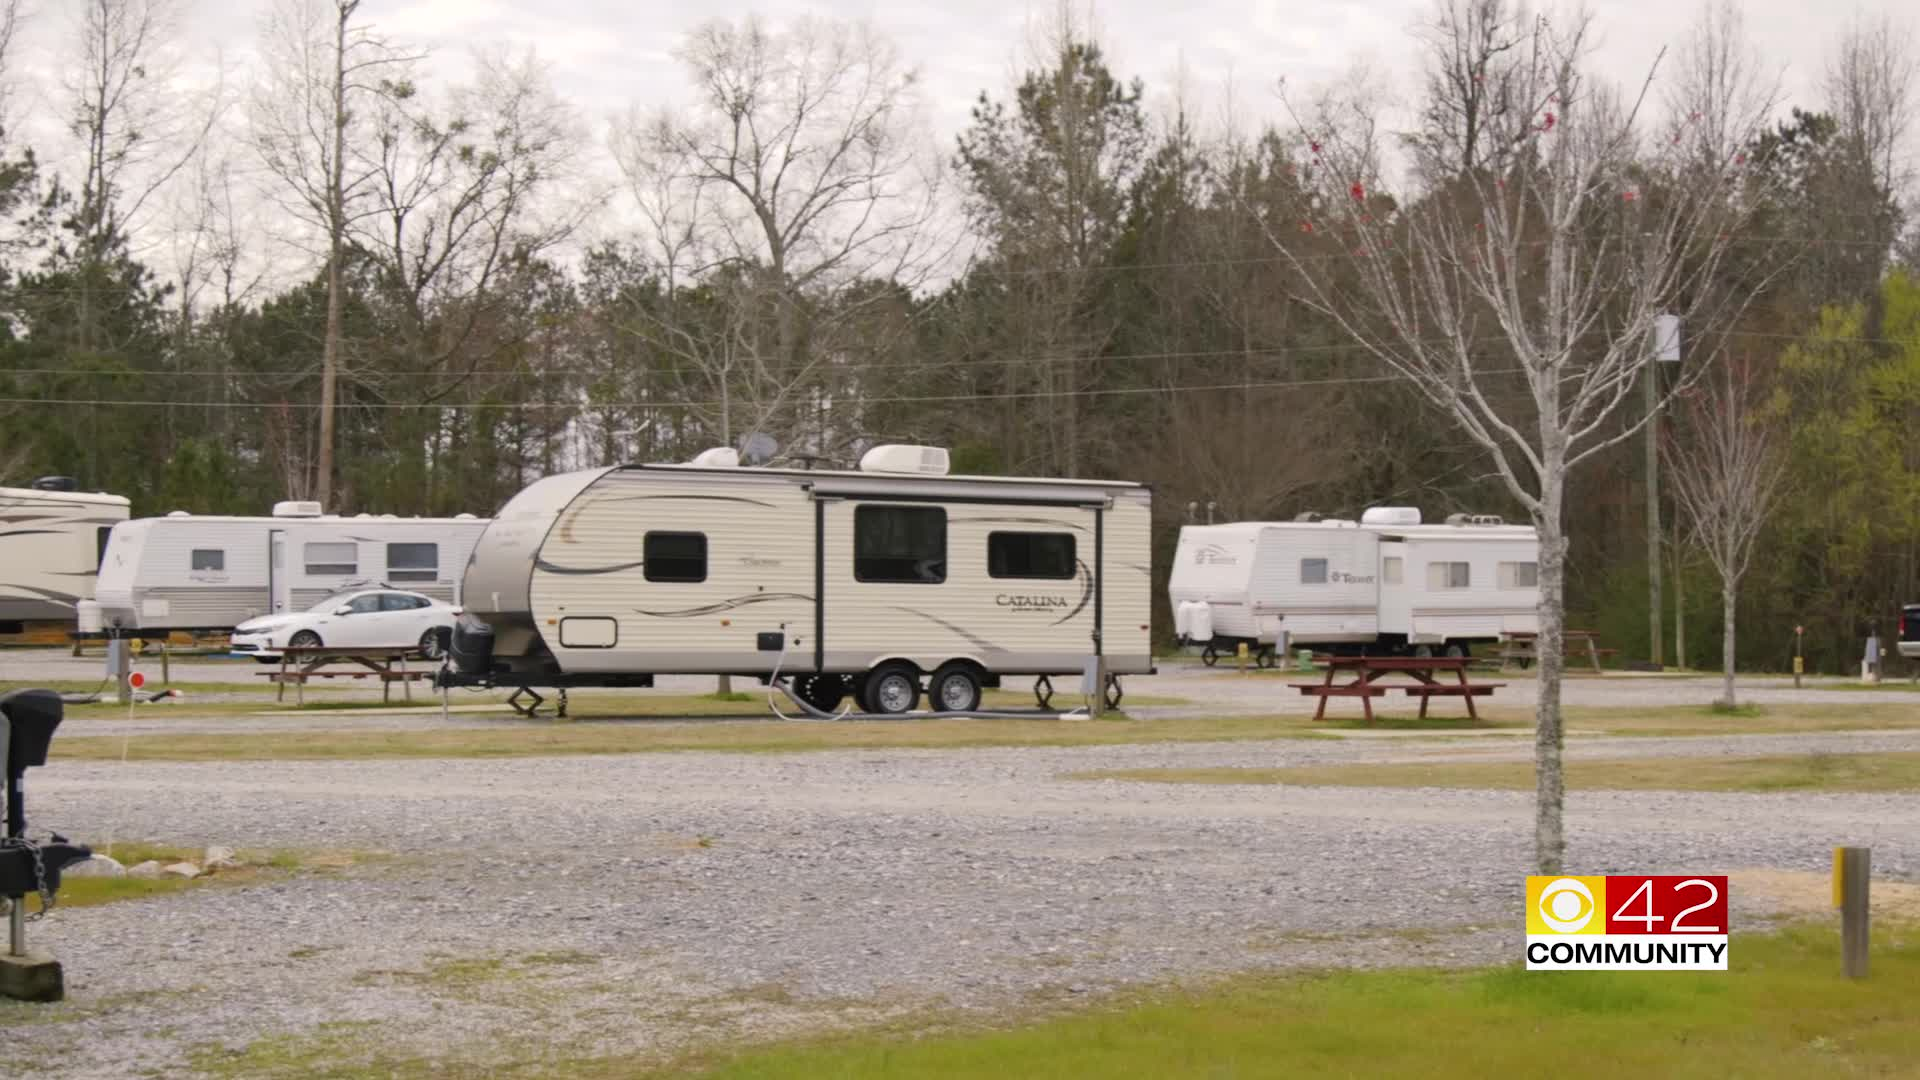 camper camping vacation ideas deal discount yellowhammer rv_248555